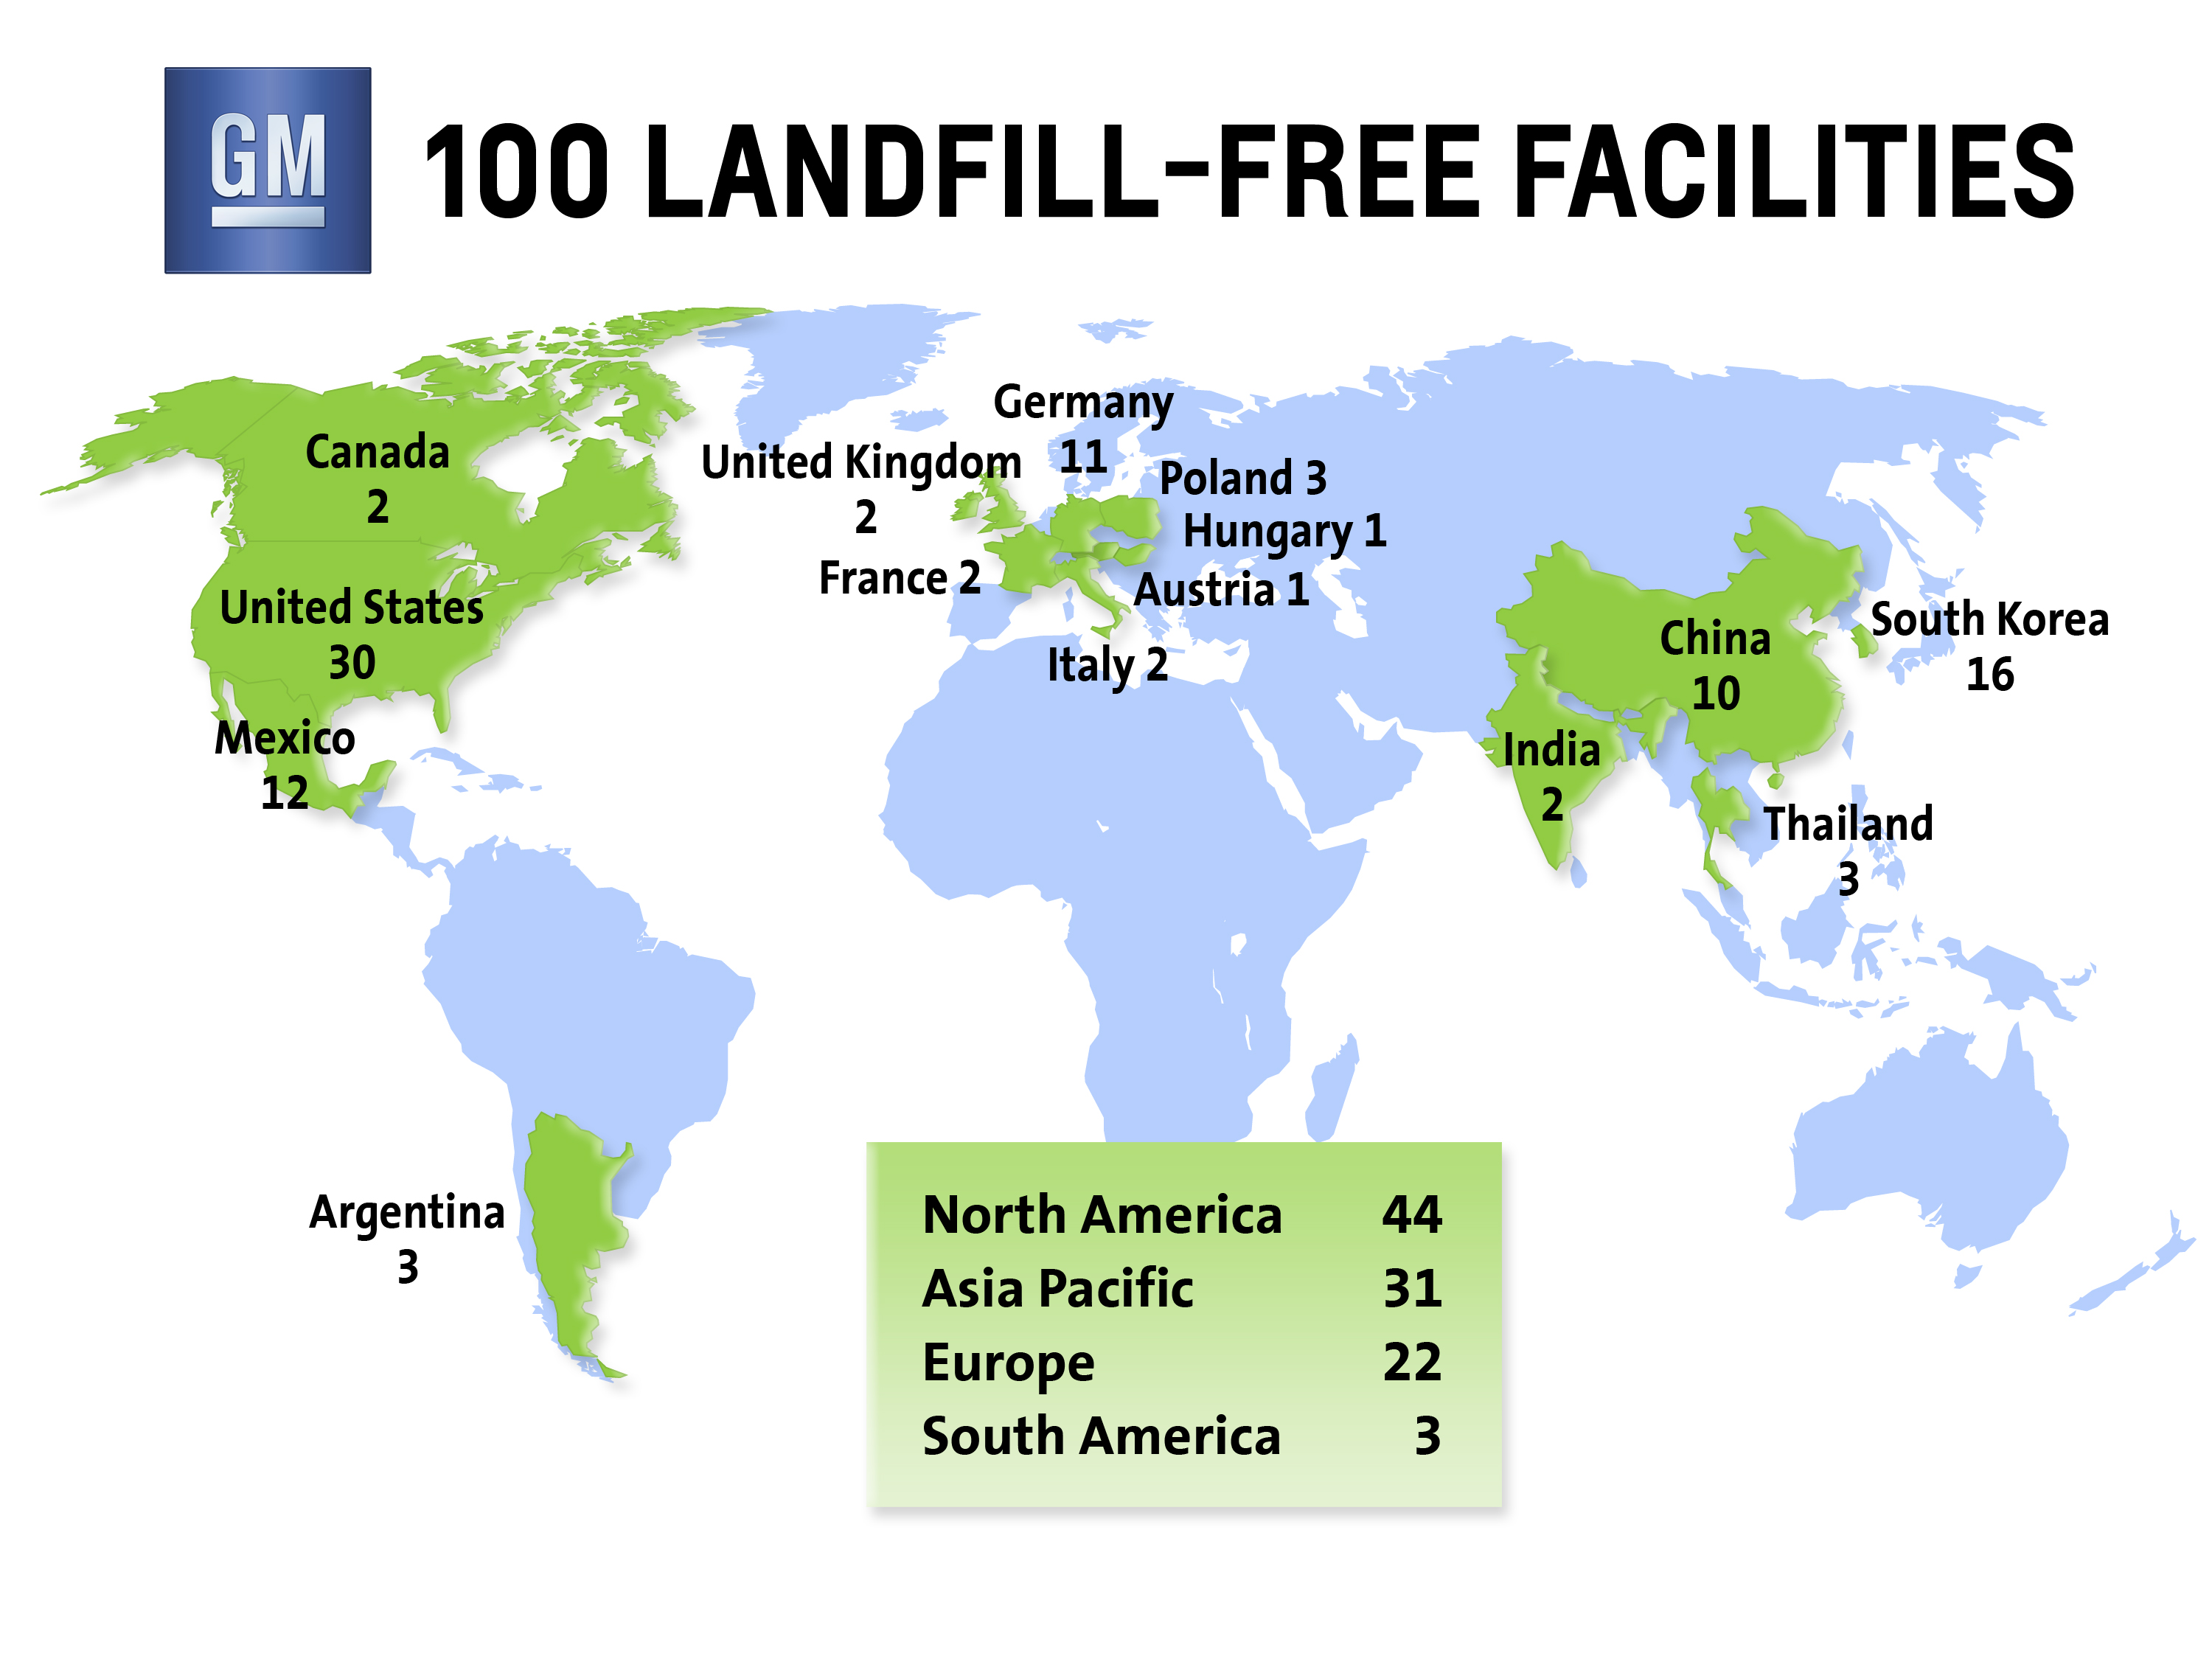 GM Reaches Century Mark in Landfill Free Facilities